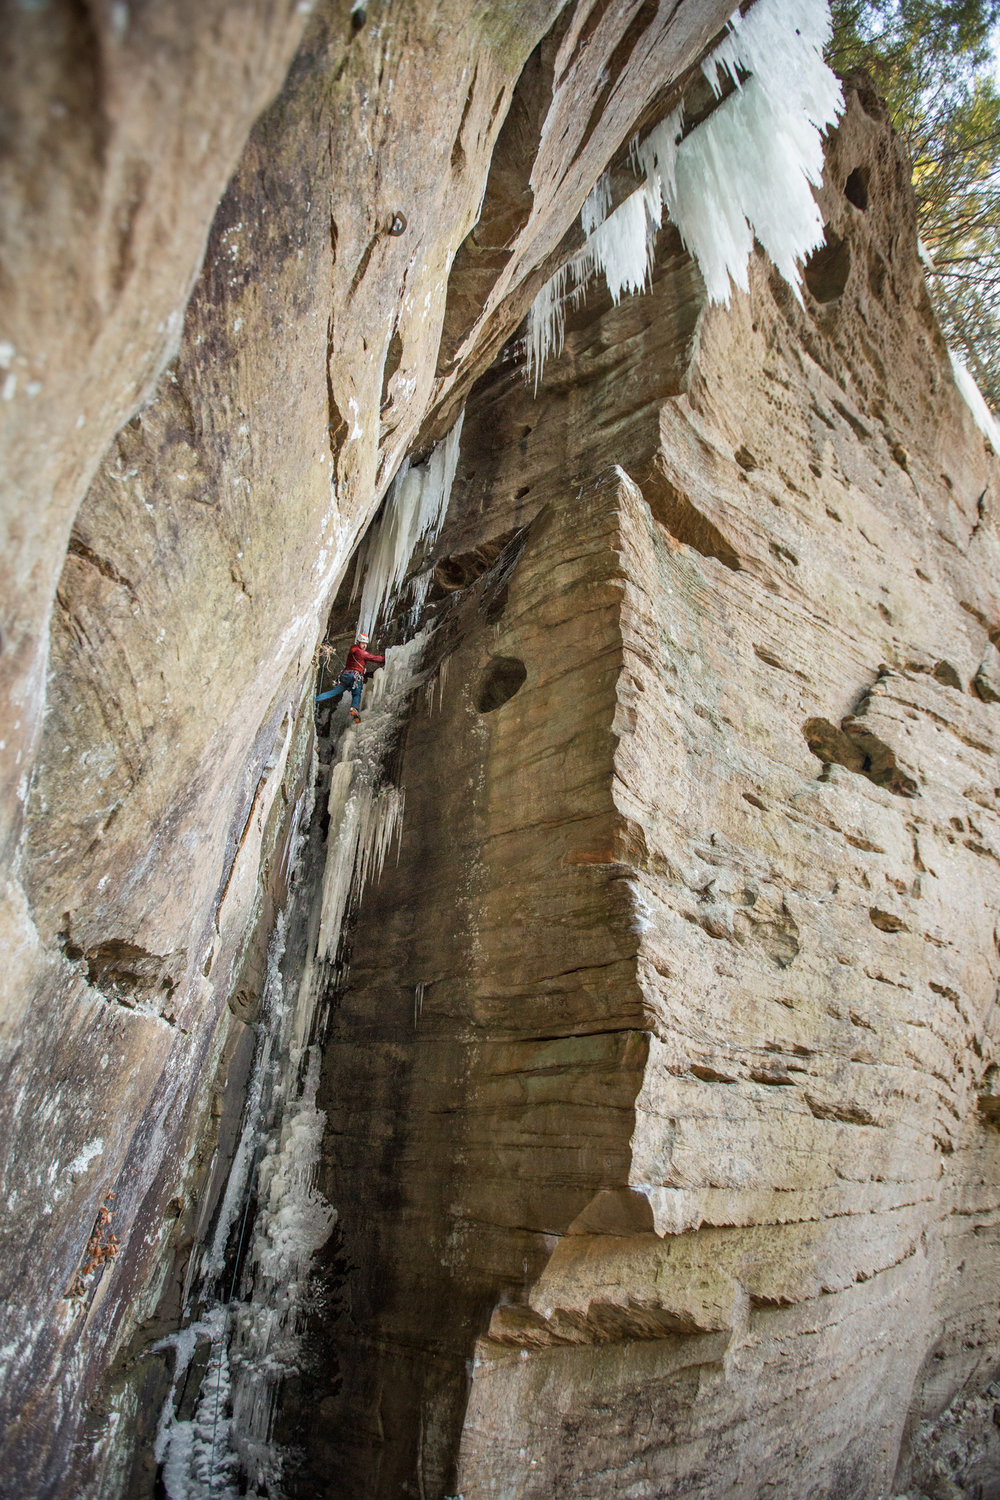 Heath Rowland gets the first ascent of a rare ice climb, formed up in Kentucky's Red River Gorge.